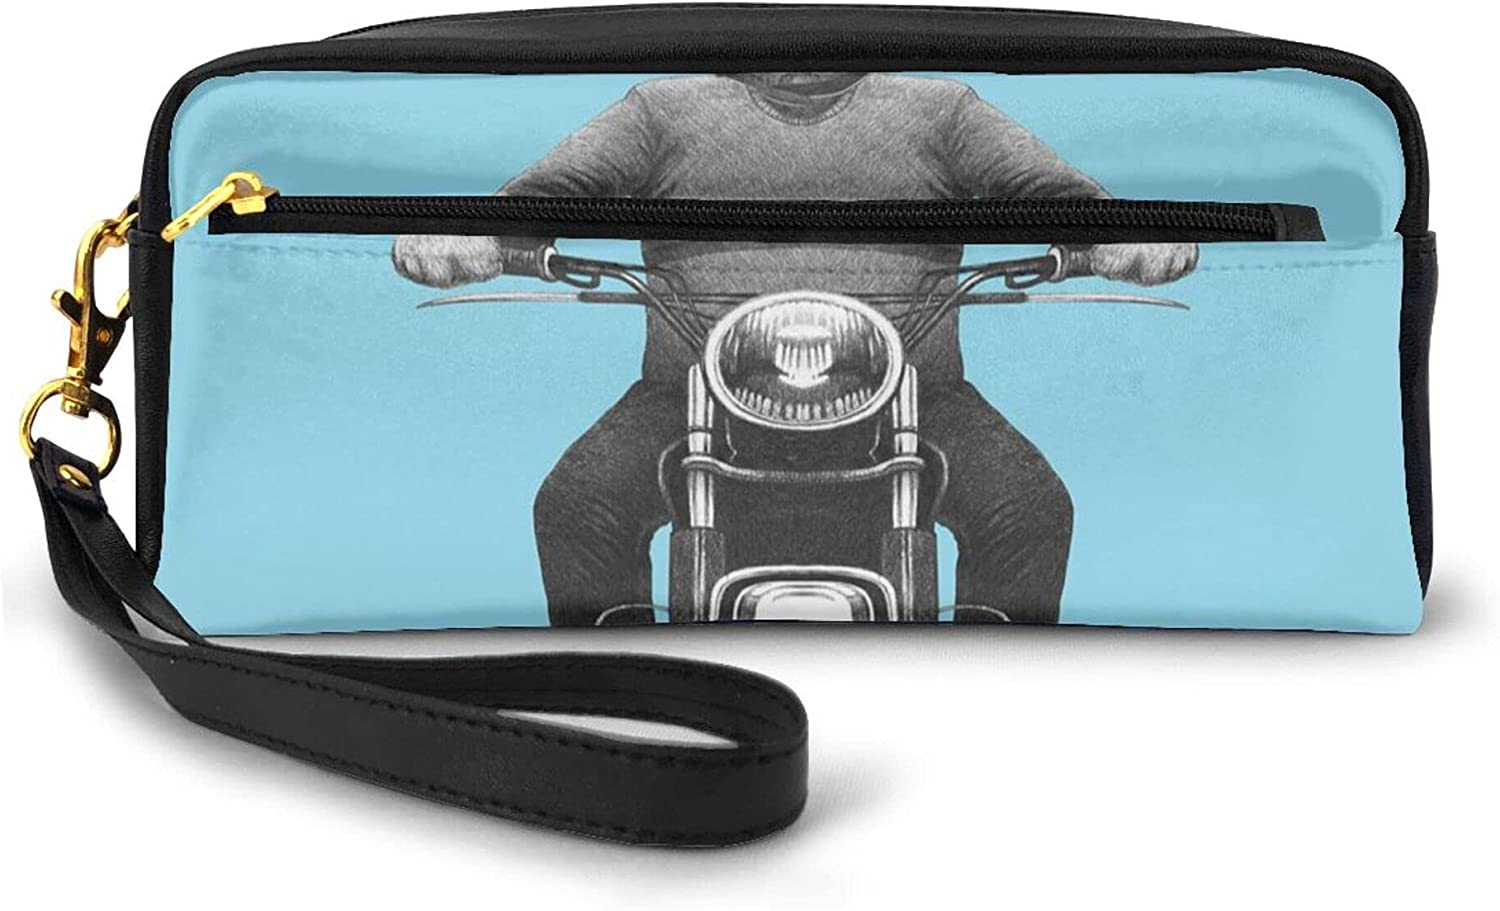 Double Zipper Large Make Up Bag,Dog Breed Riding Motorcycle Adventurous Scooter Hard Hat,Pencil Stationery Storage Pouch Bag Case